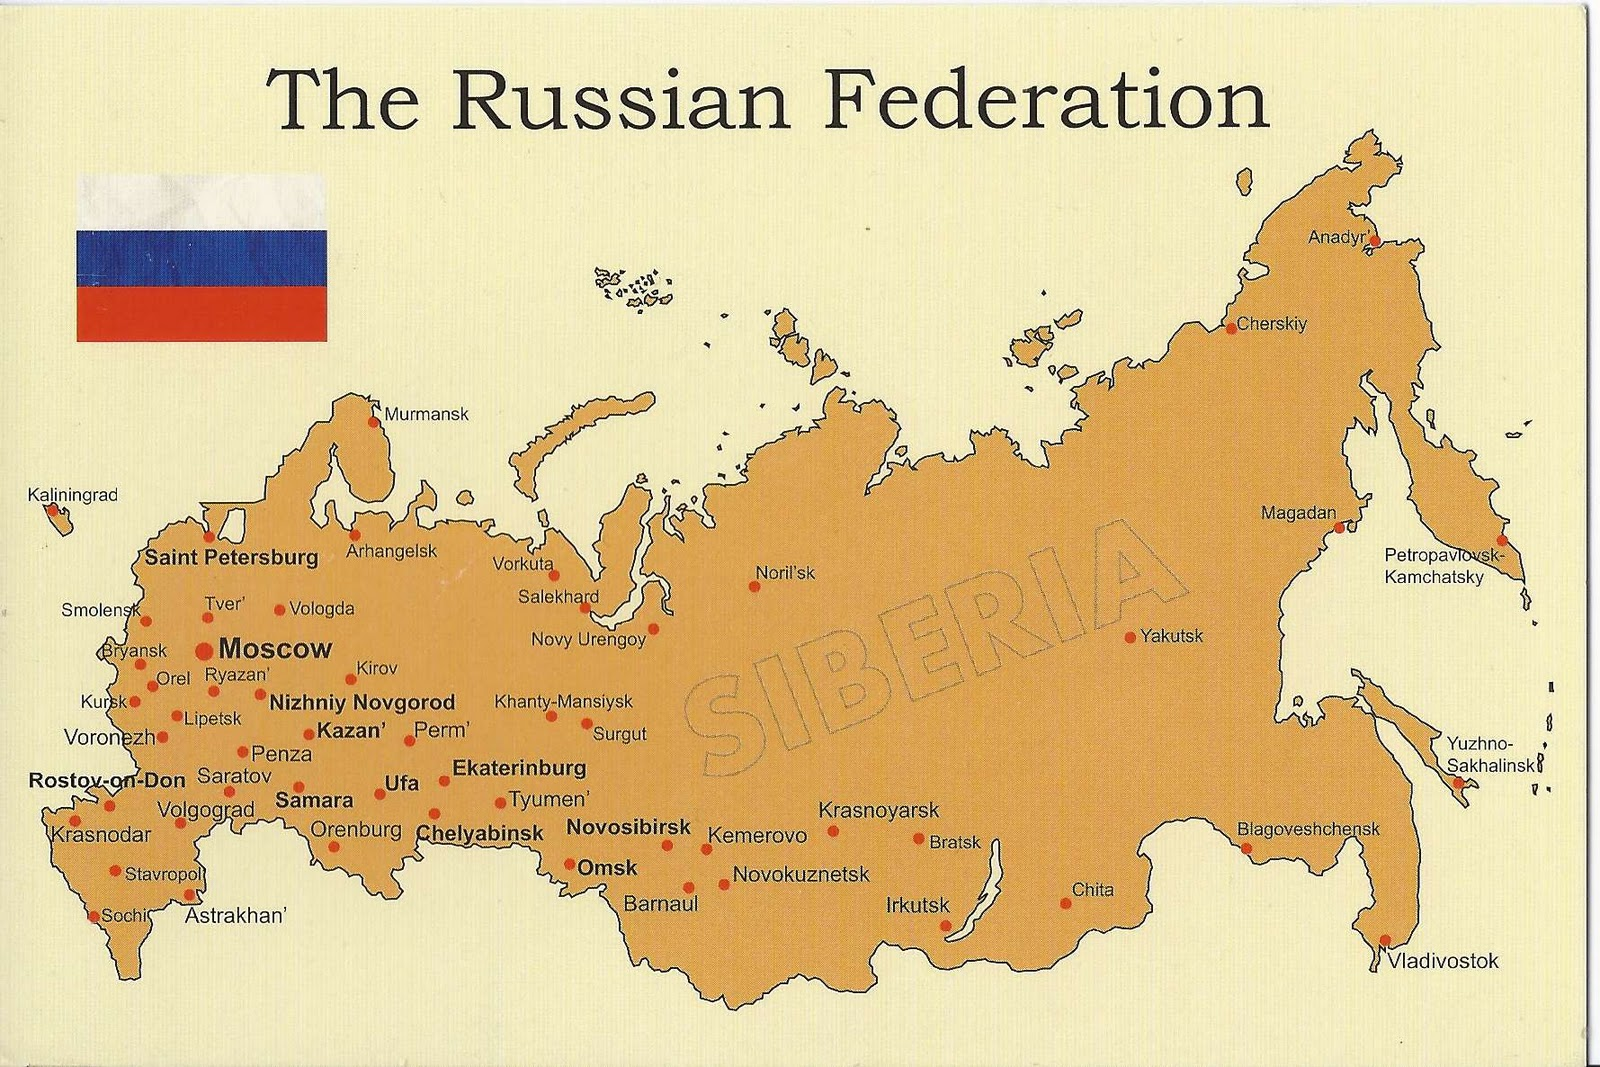 A Journey of Postcards: A map of the Russian Federation